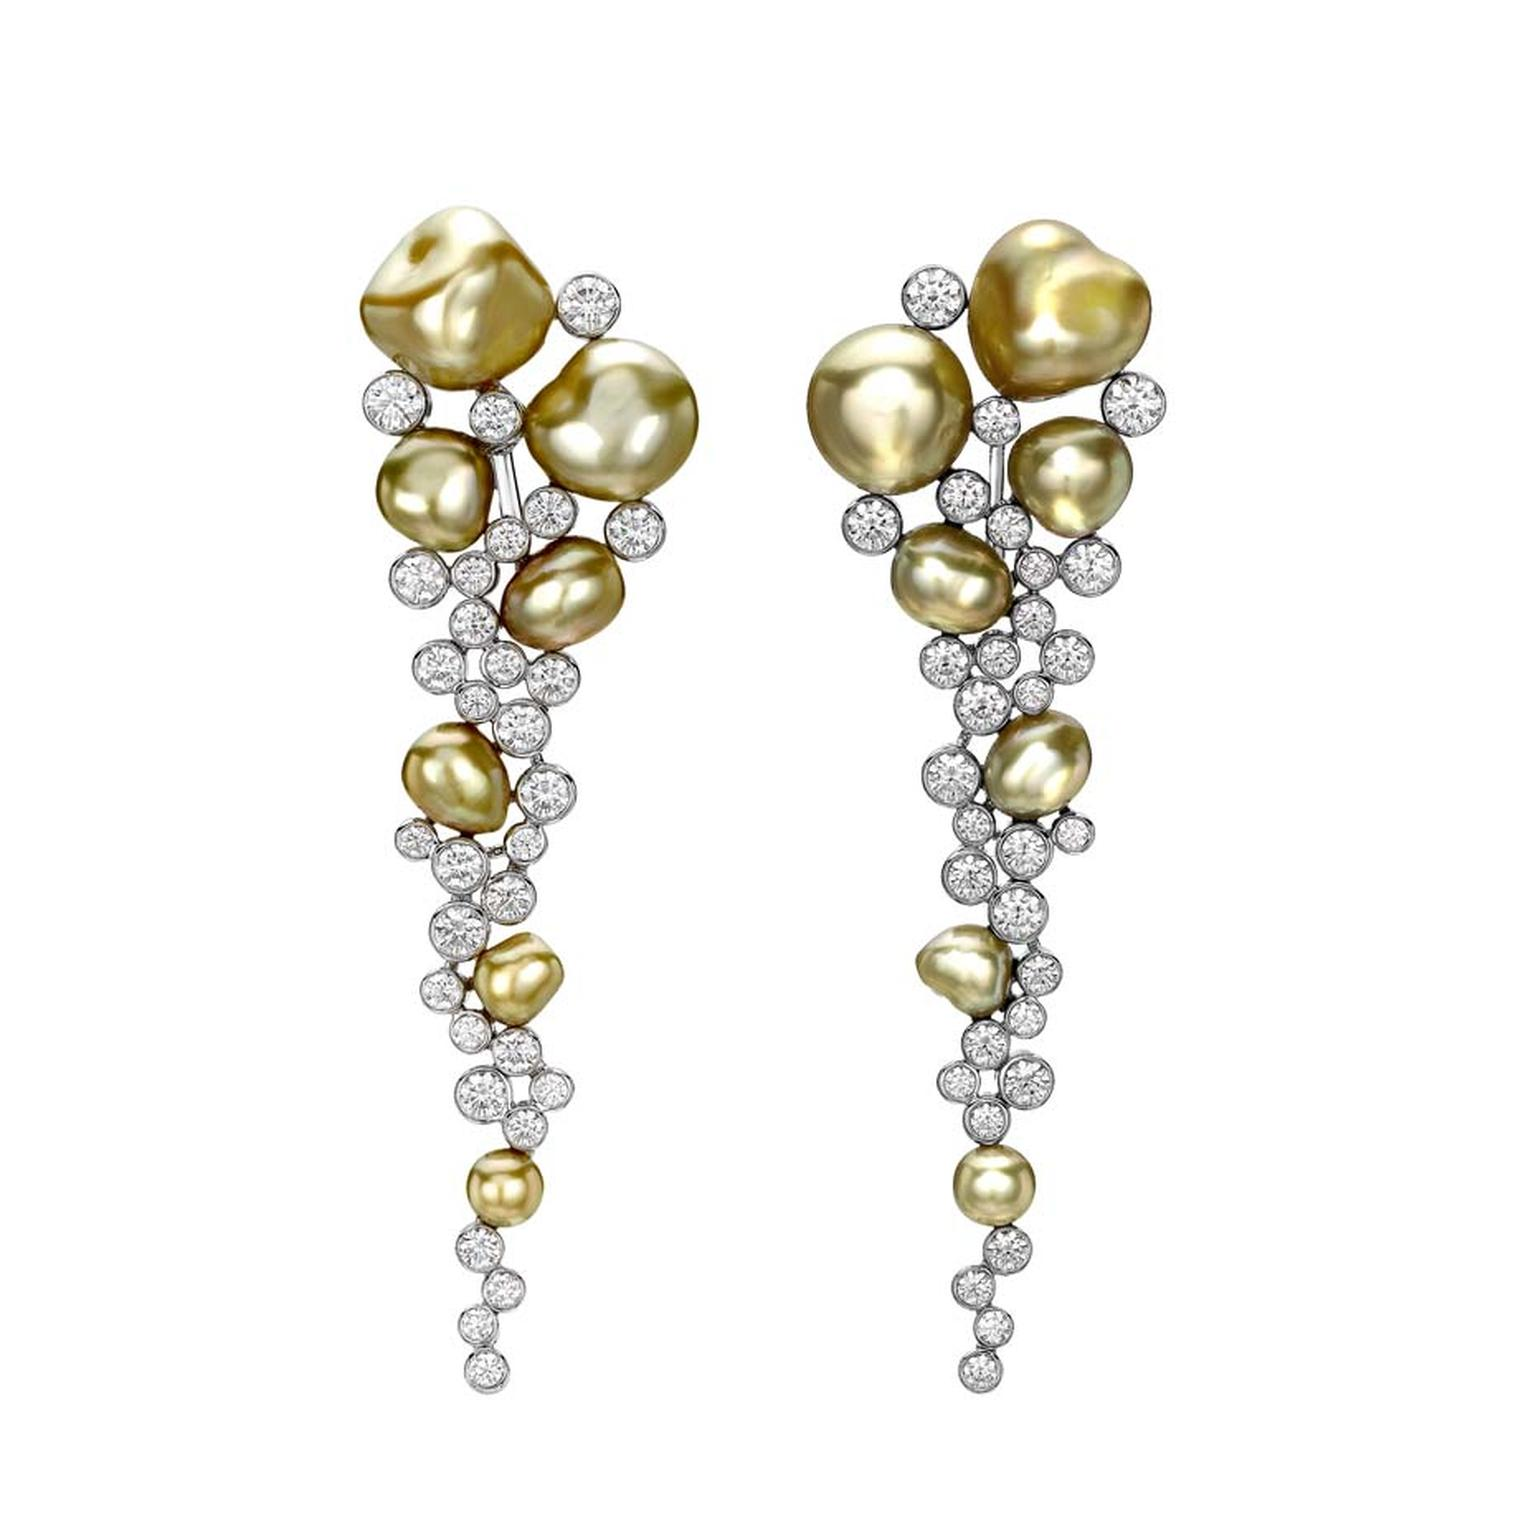 Mikimoto Regalia Collection Gold Cascade earrings with gold pearls and diamonds in white gold